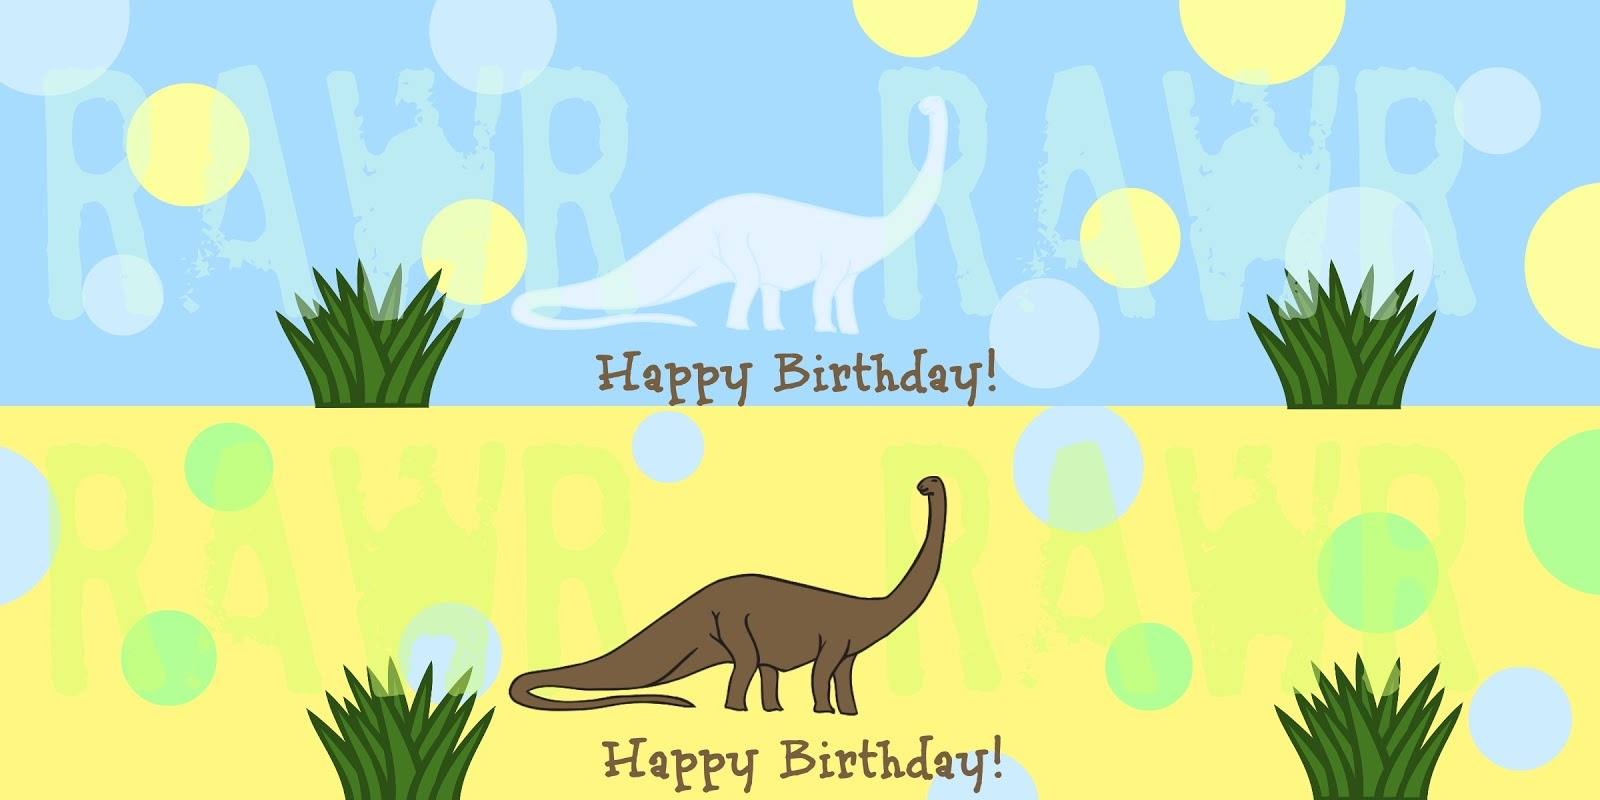 Party With Dinosaurs - Dinosaur Themed Birthday Party - Free Printable Dinosaur Birthday Invitations